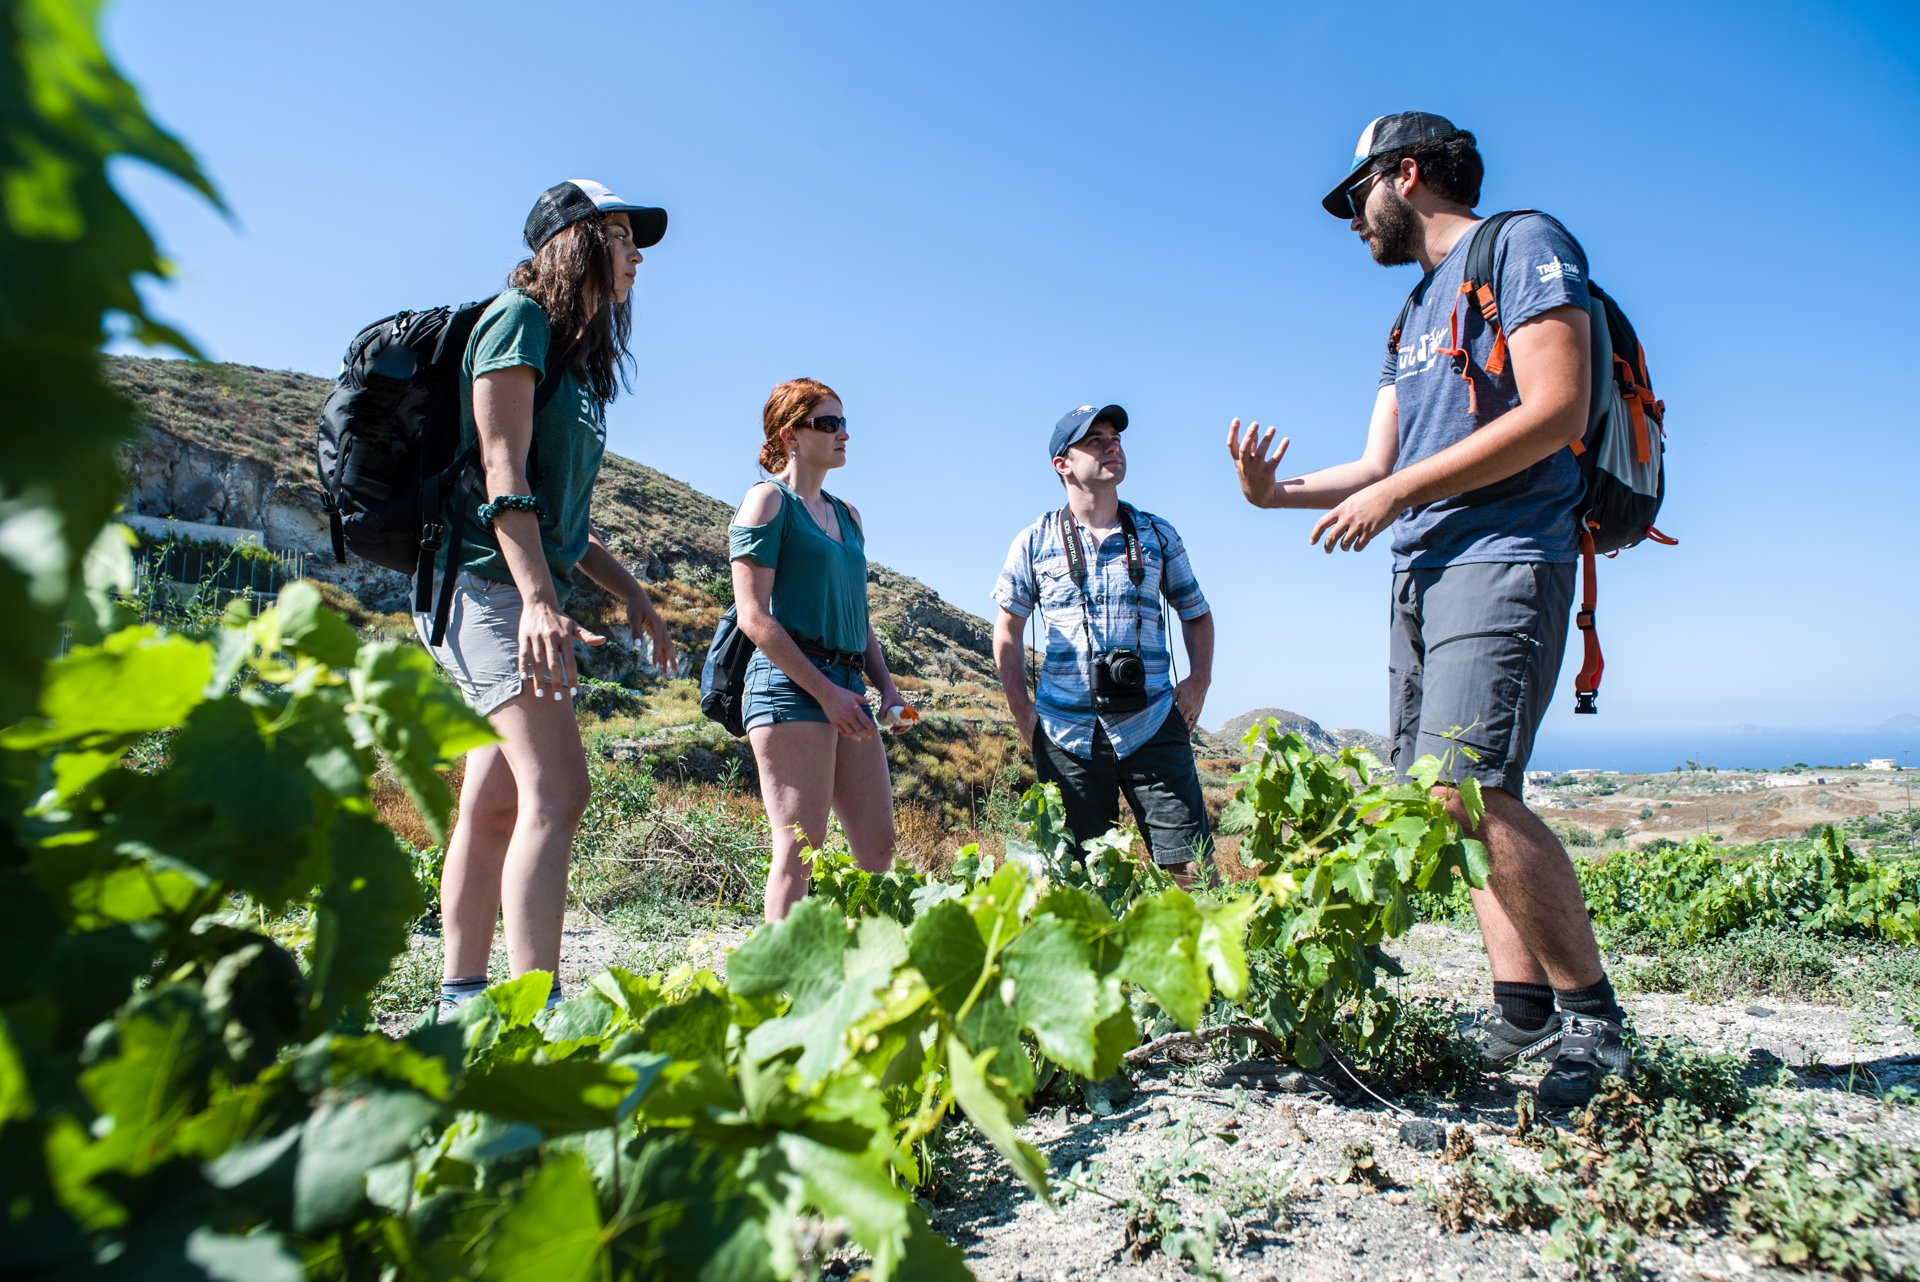 Your Local Guide Will Teach You More About The Beautiful Island On The Hiking, Snorkeling & Cooking Experience In Santorini_92